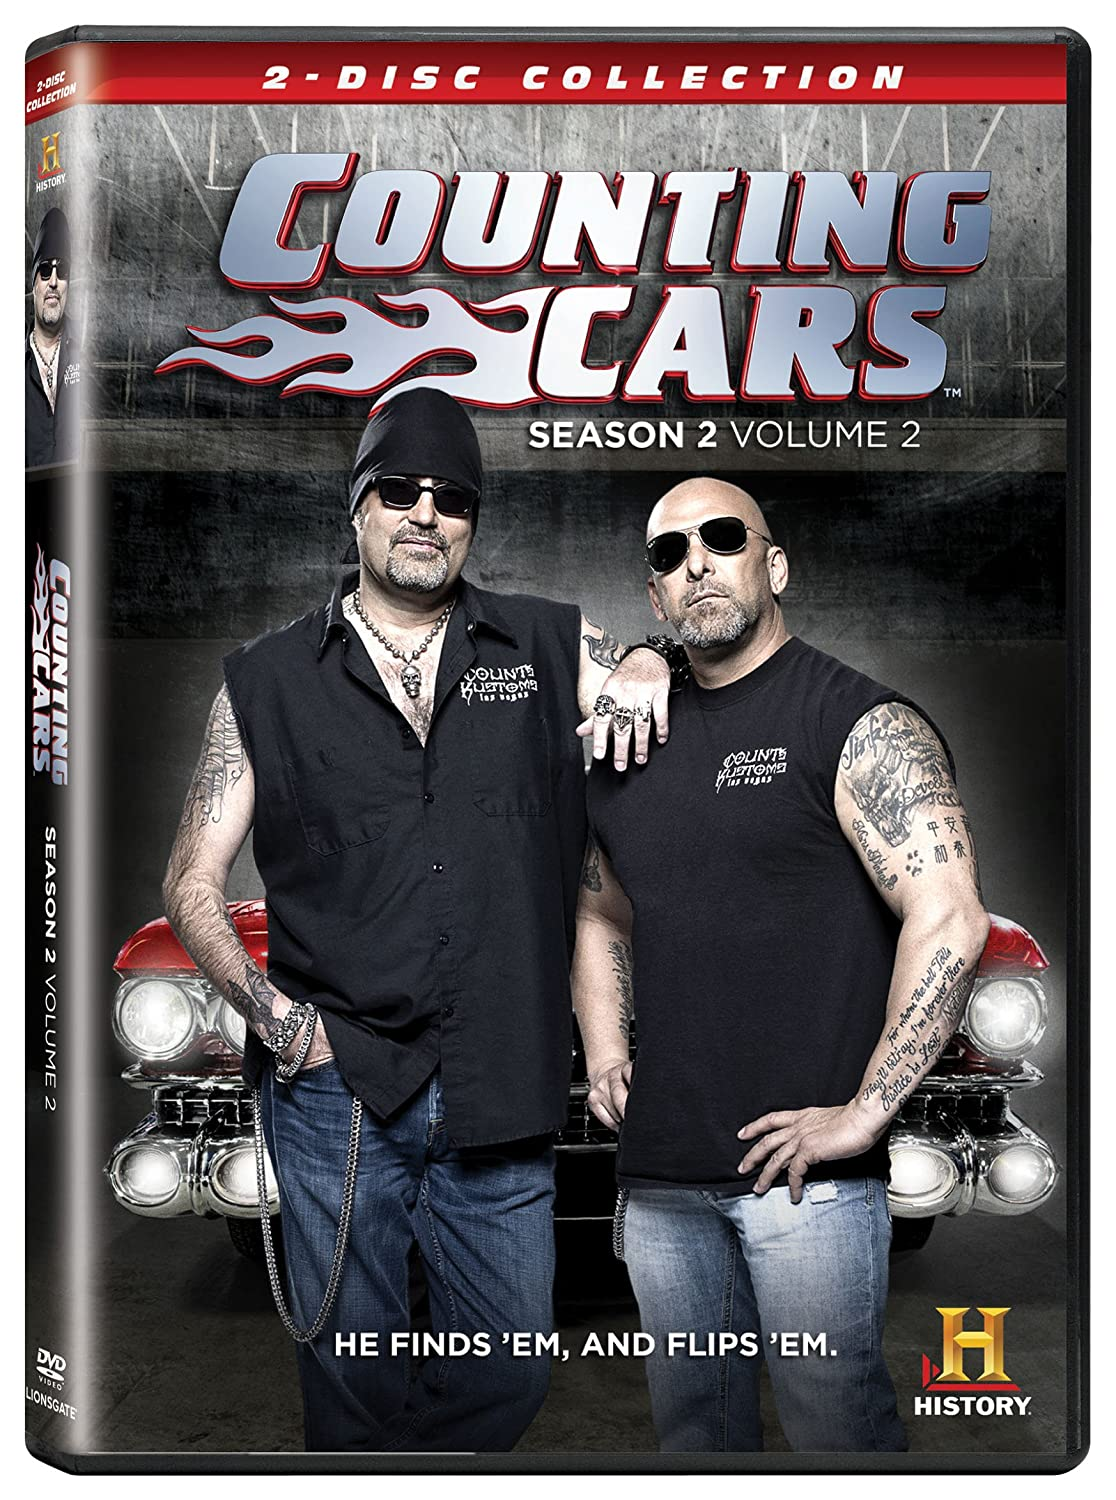 Amazon In Buy Counting Cars Season 2 Vol 2 Dvd Blu Ray Online At Best Prices In India Movies Tv Shows